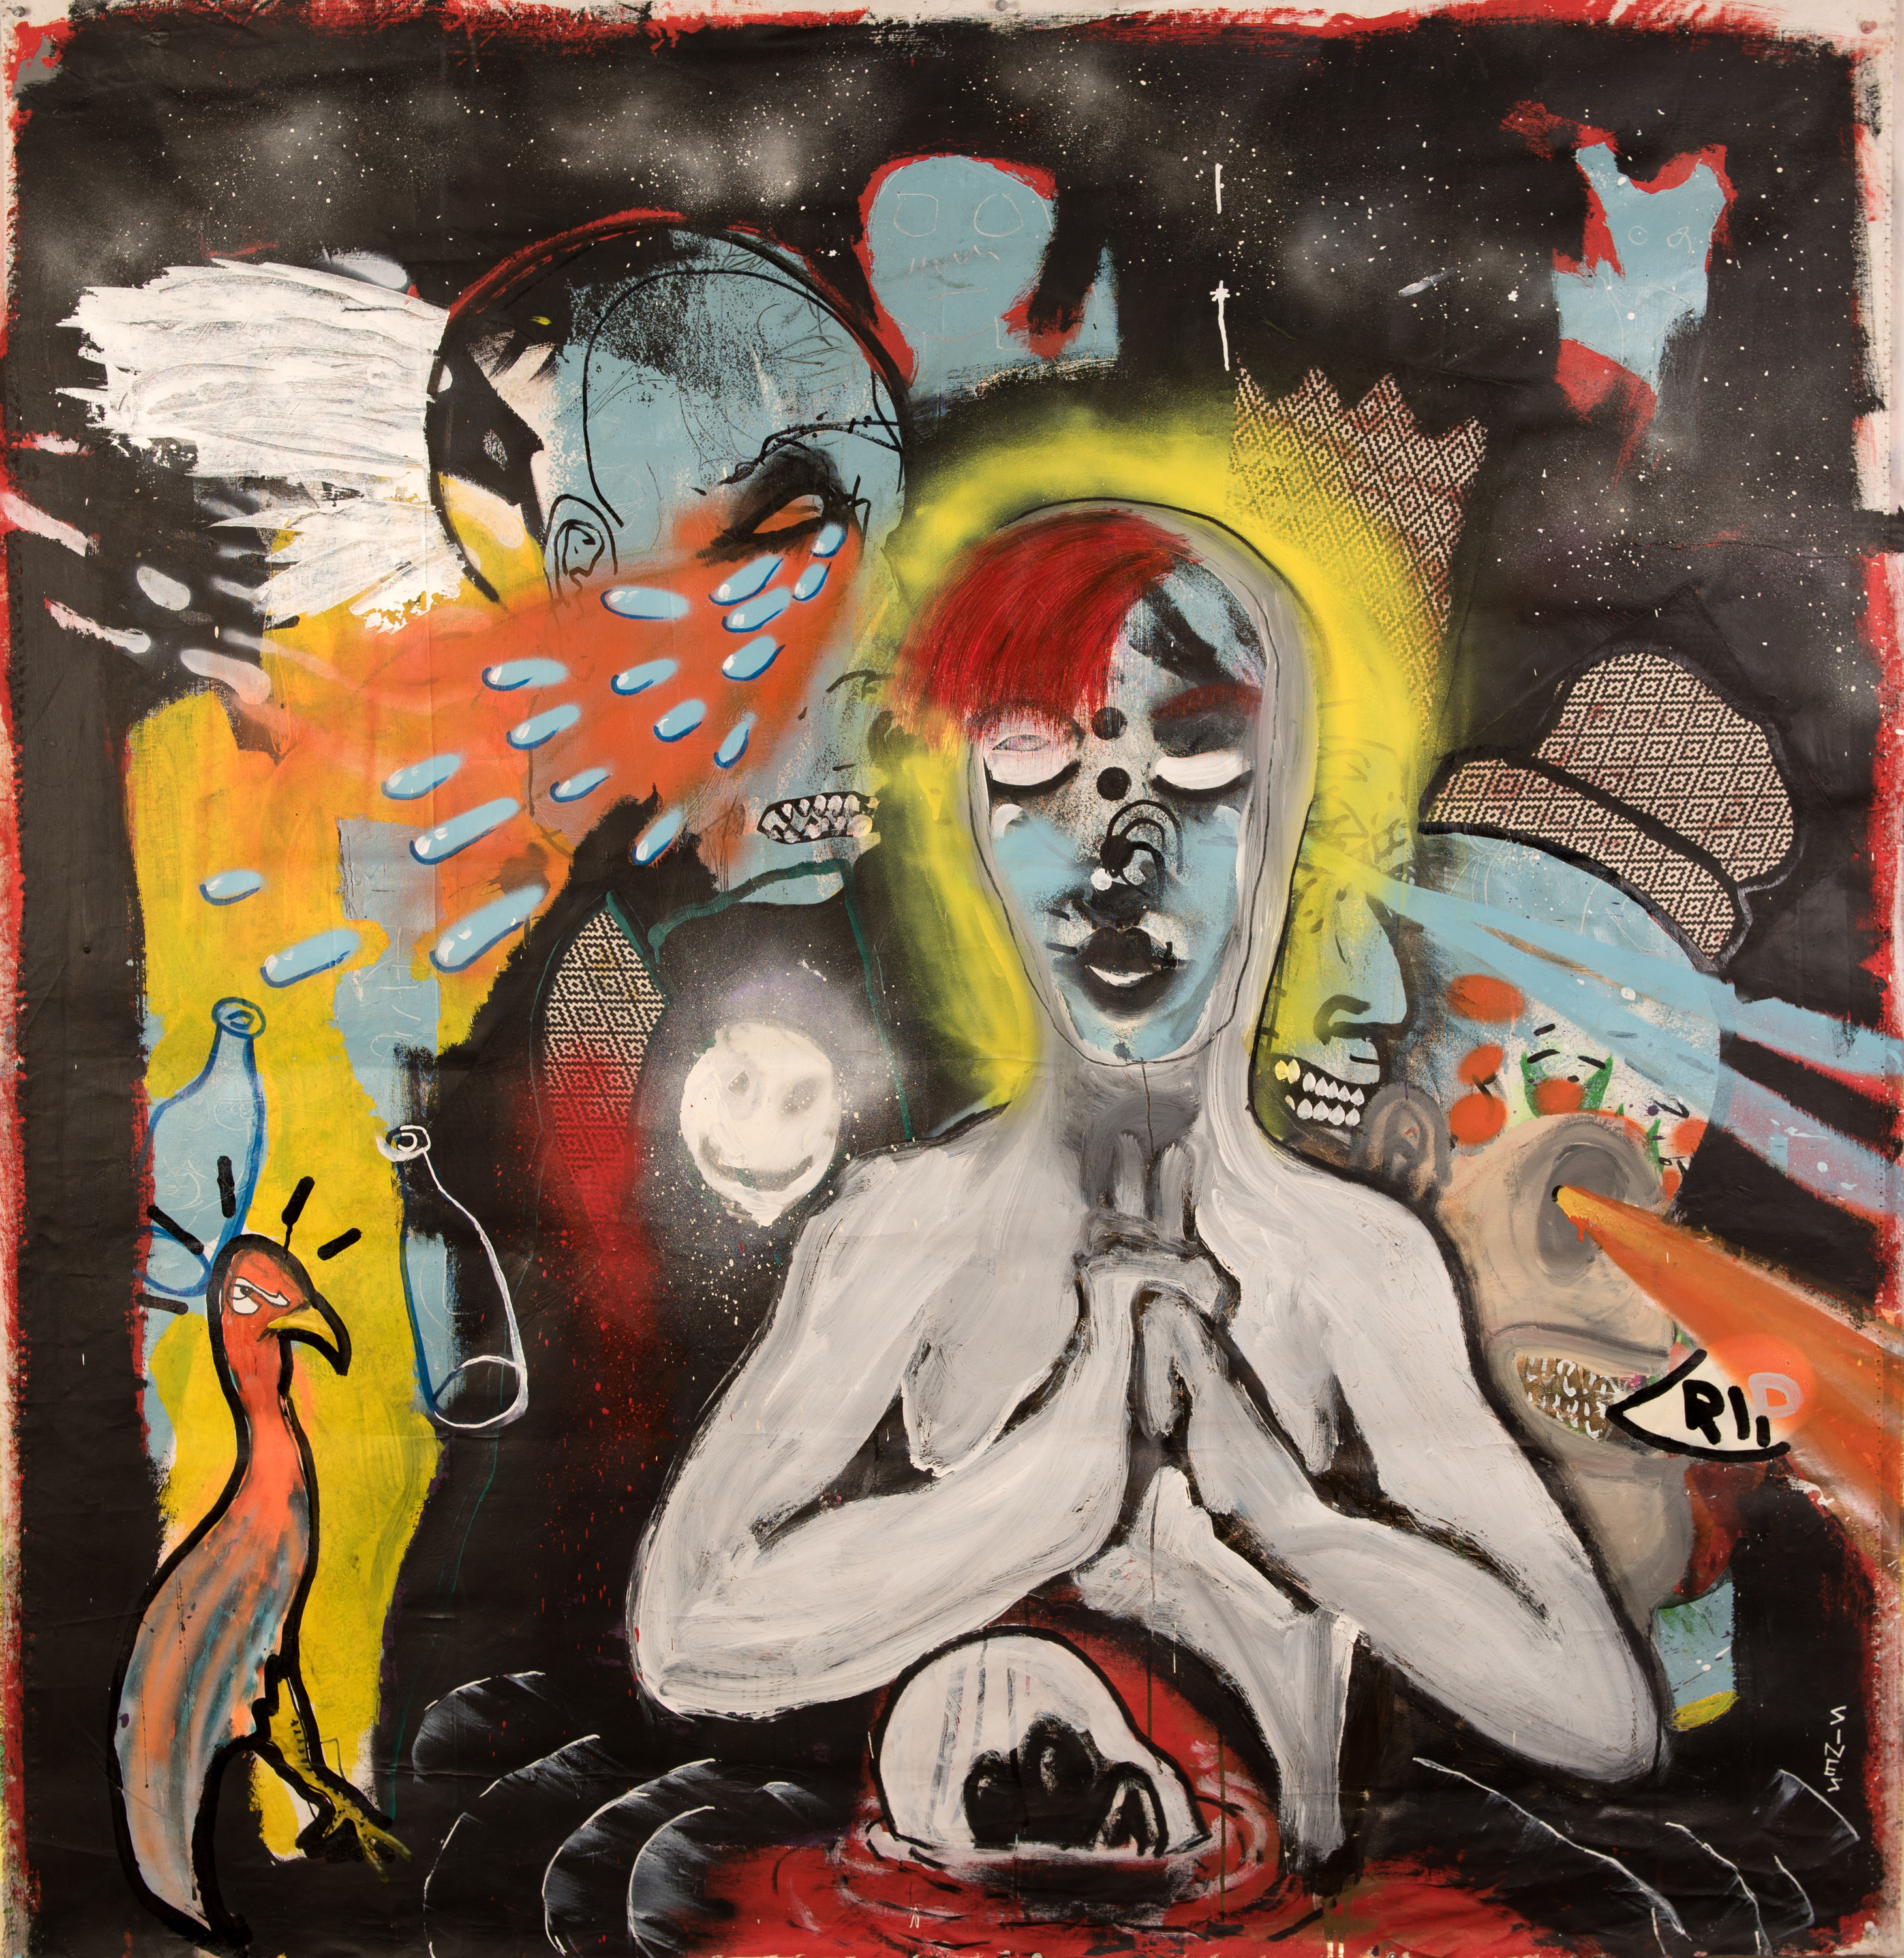 Brandon sines   the march   60 x 62 inches   painting   wetpaintnyc   art ktr3zi